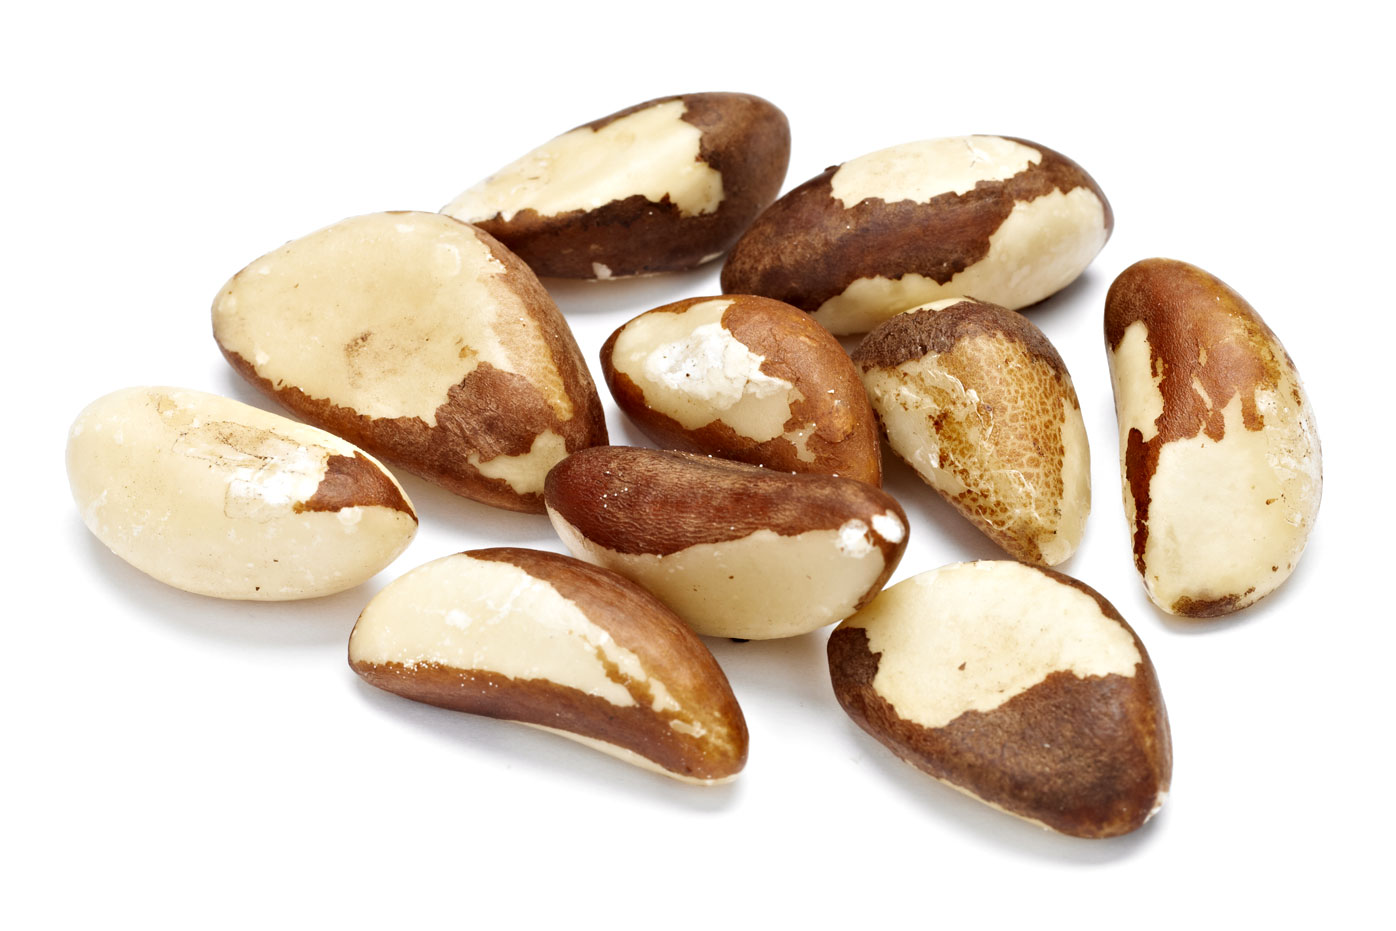 Brazil nuts: 340 micrograms per five nuts